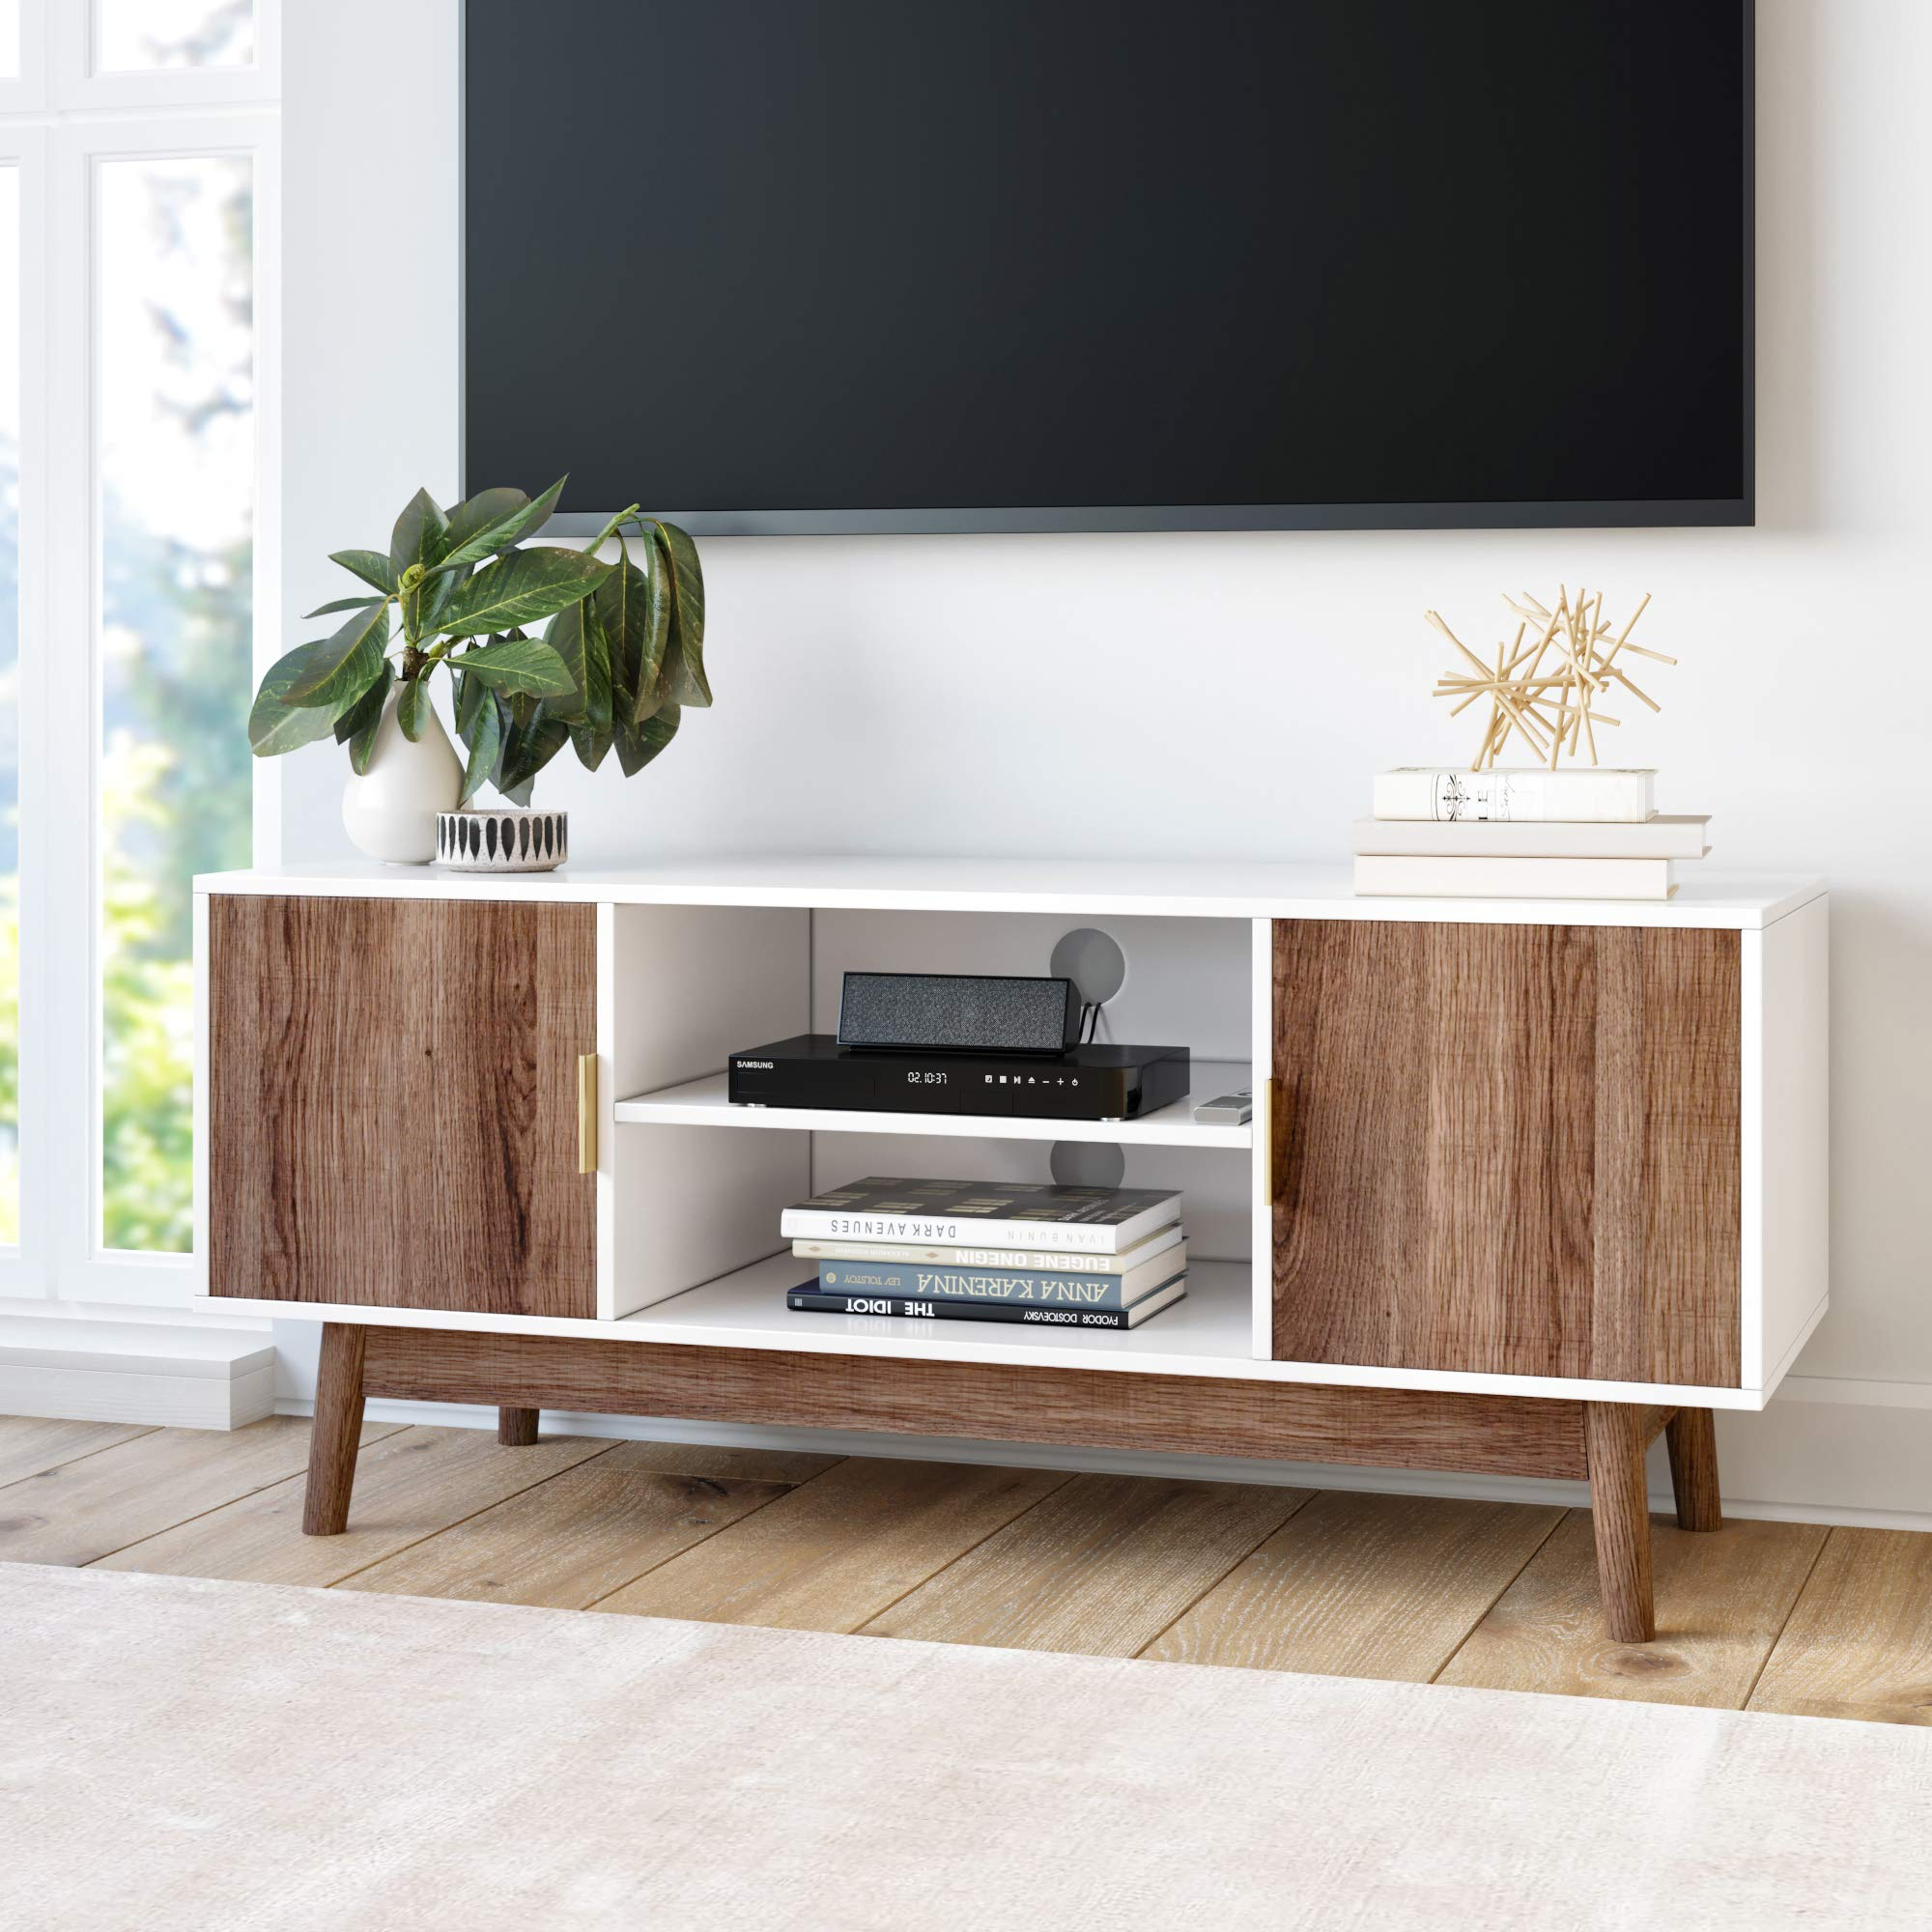 Nathan James 74403 Wesley Scandinavian TV Stand Media Console with Wooden Frame and Cabinet Doors, White/Rustic Oak by Nathan James